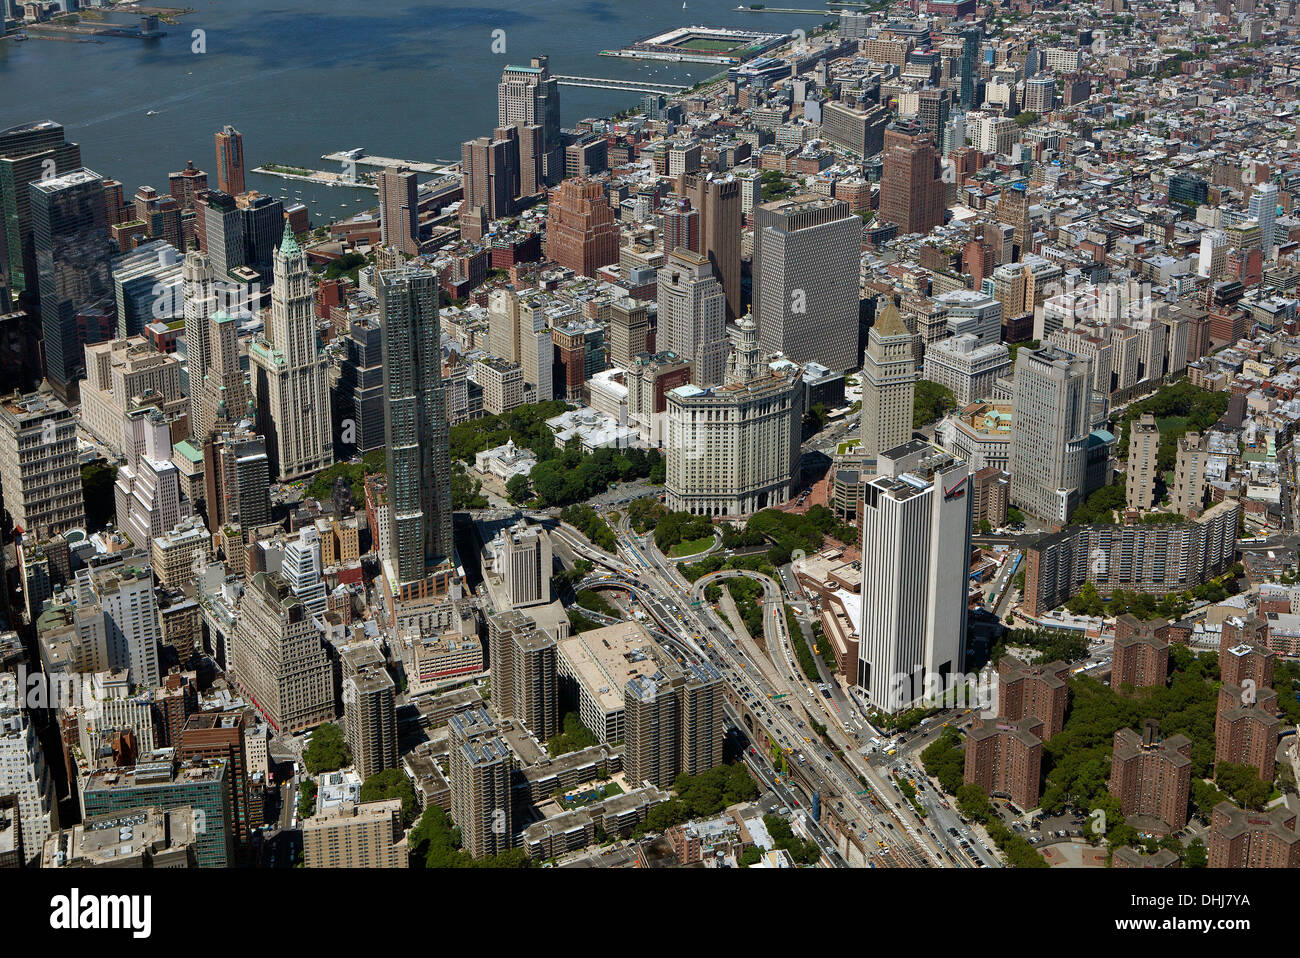 aerial photograph City Hall and Municipal Building, Civic Center, Manhattan, New York City - Stock Image